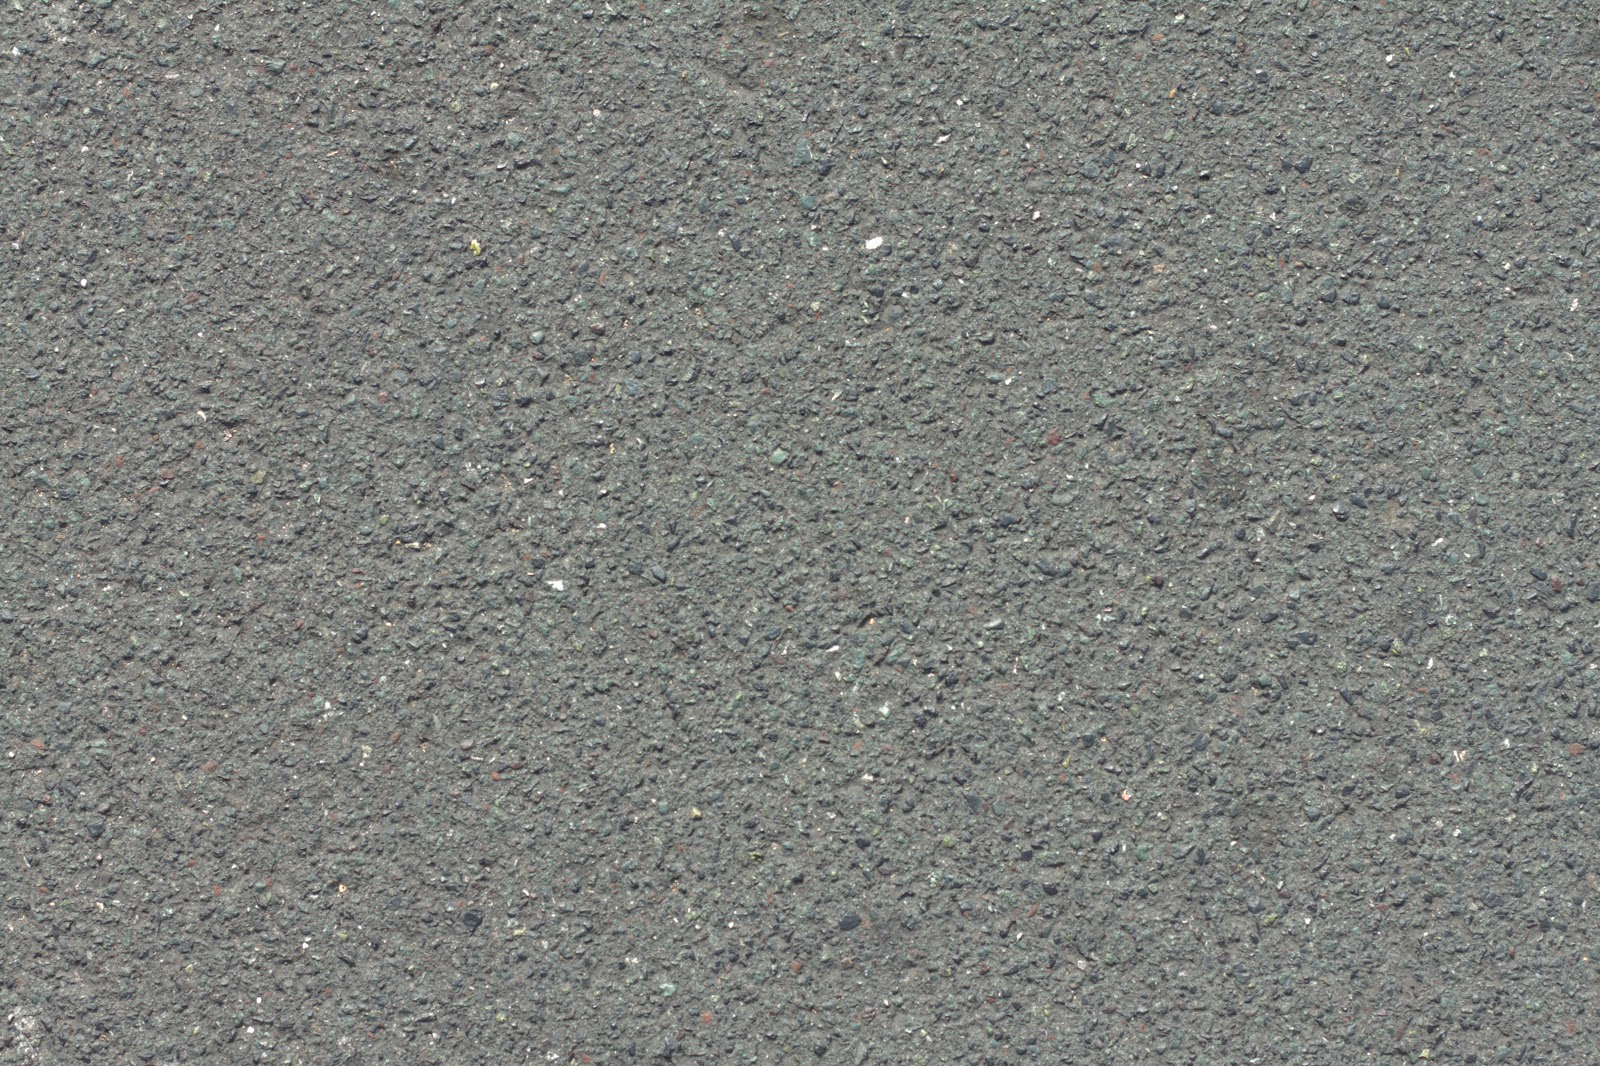 Asphalt 2 Tarmac Road Tar Texture on 3d hd backgrounds